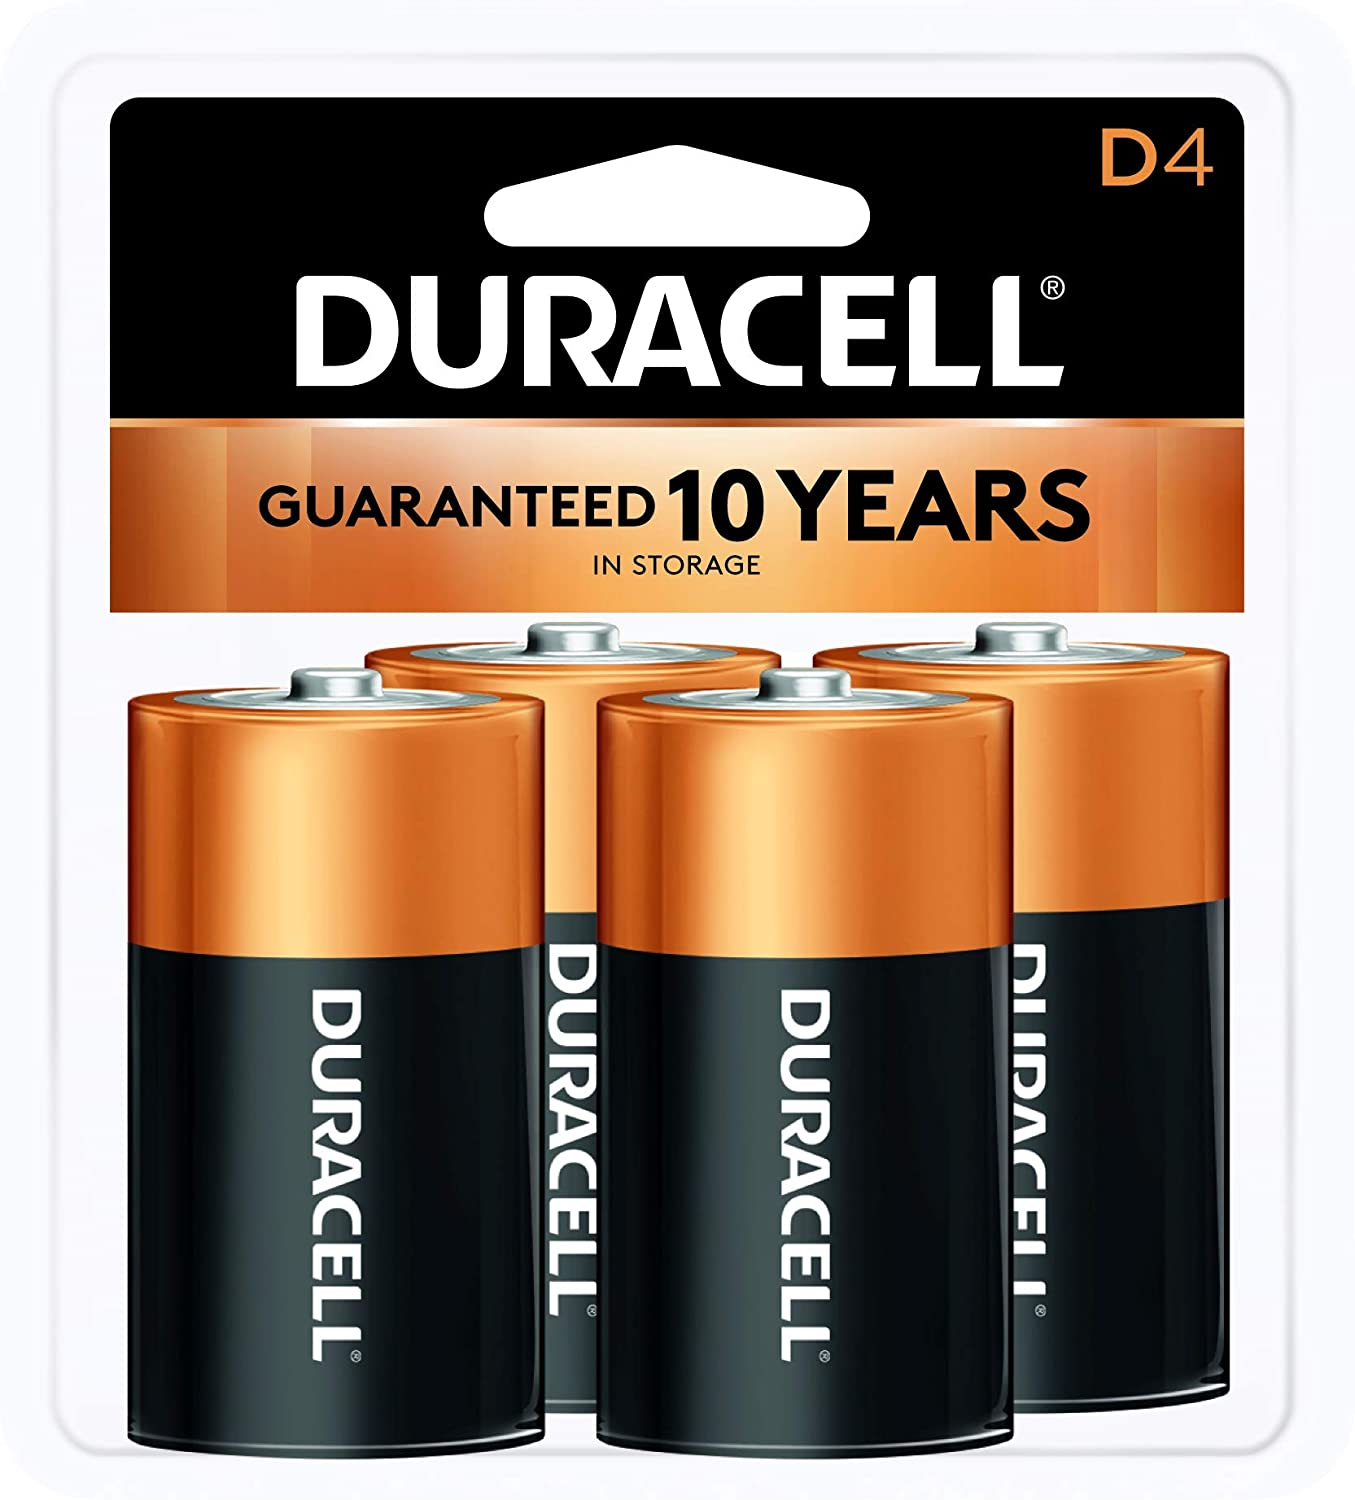 Duracell - CopperTop D Alkaline Batteries with recloseable package - long lasting, all-purpose D battery for household and business - 4 count